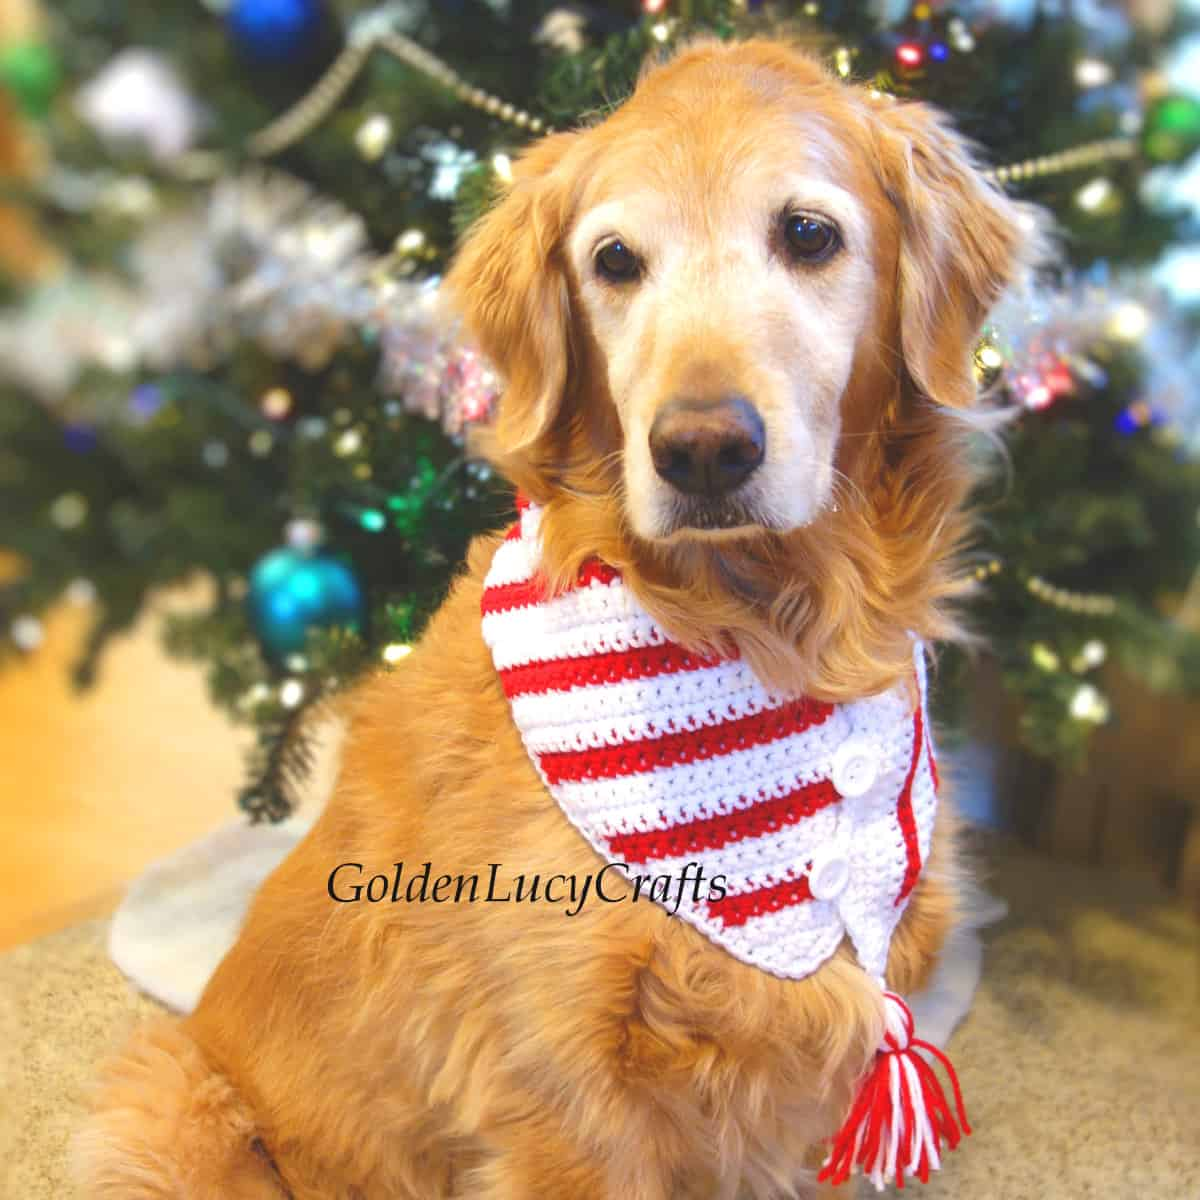 Dog dressed in crocheted candy cane Christmas scarf.